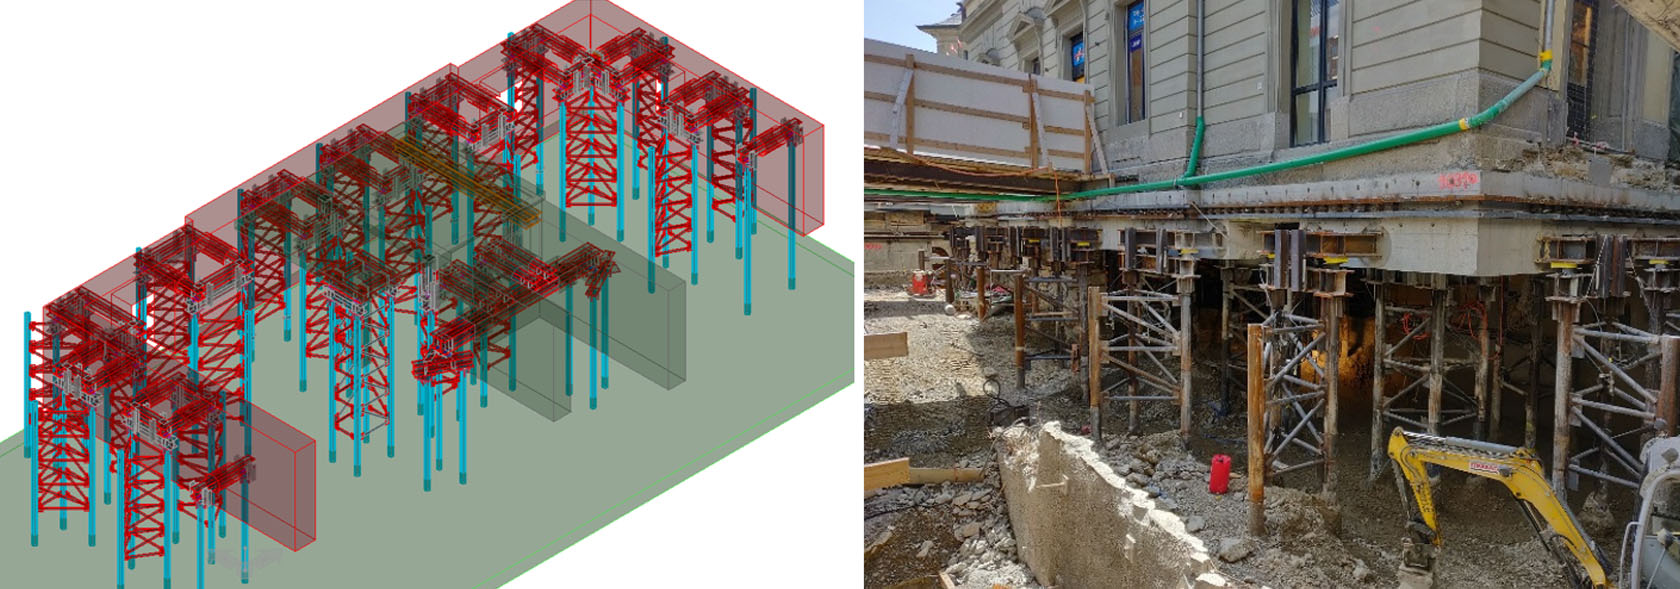 Digging deeper with monitoring - Terradata & Leica Geosystems AG Case Study - BIM Model